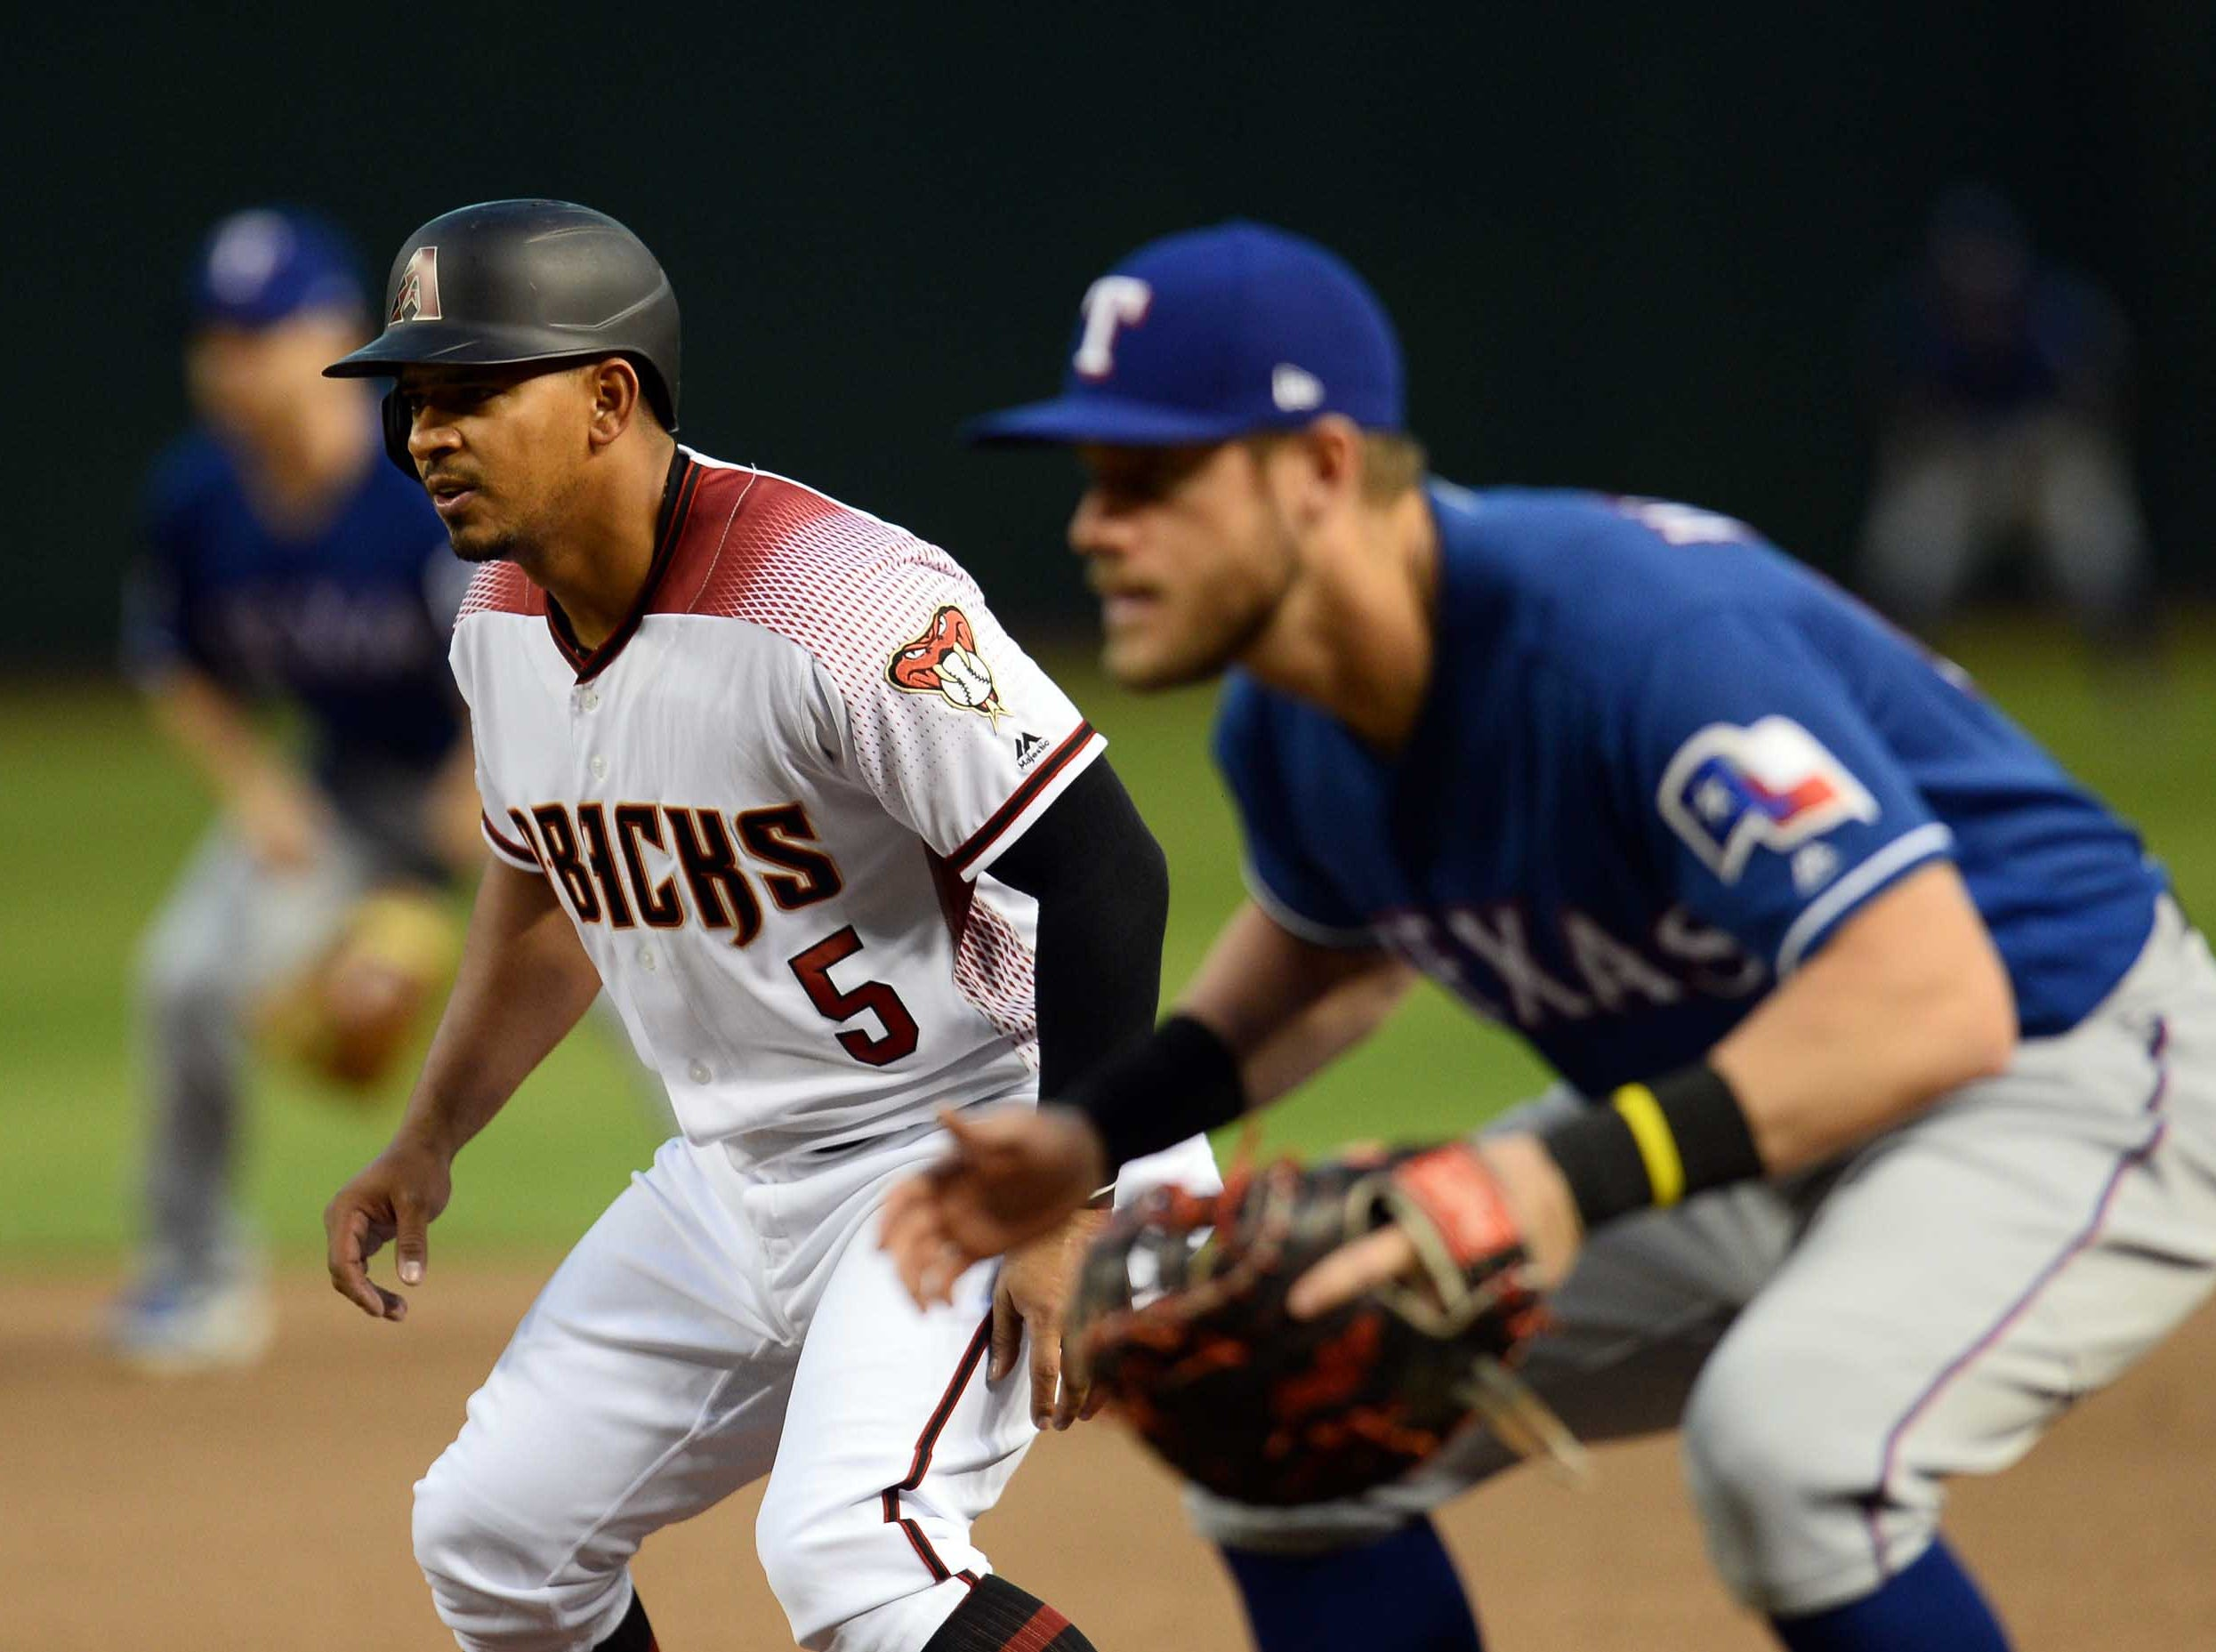 Apr 10, 2019; Phoenix, AZ, USA; Arizona Diamondbacks third baseman Eduardo Escobar (5) leads off of first as as Texas Rangers first  baseman Patrick Wisdom covers the bag during the first inning at Chase Field. Mandatory Credit: Joe Camporeale-USA TODAY Sports